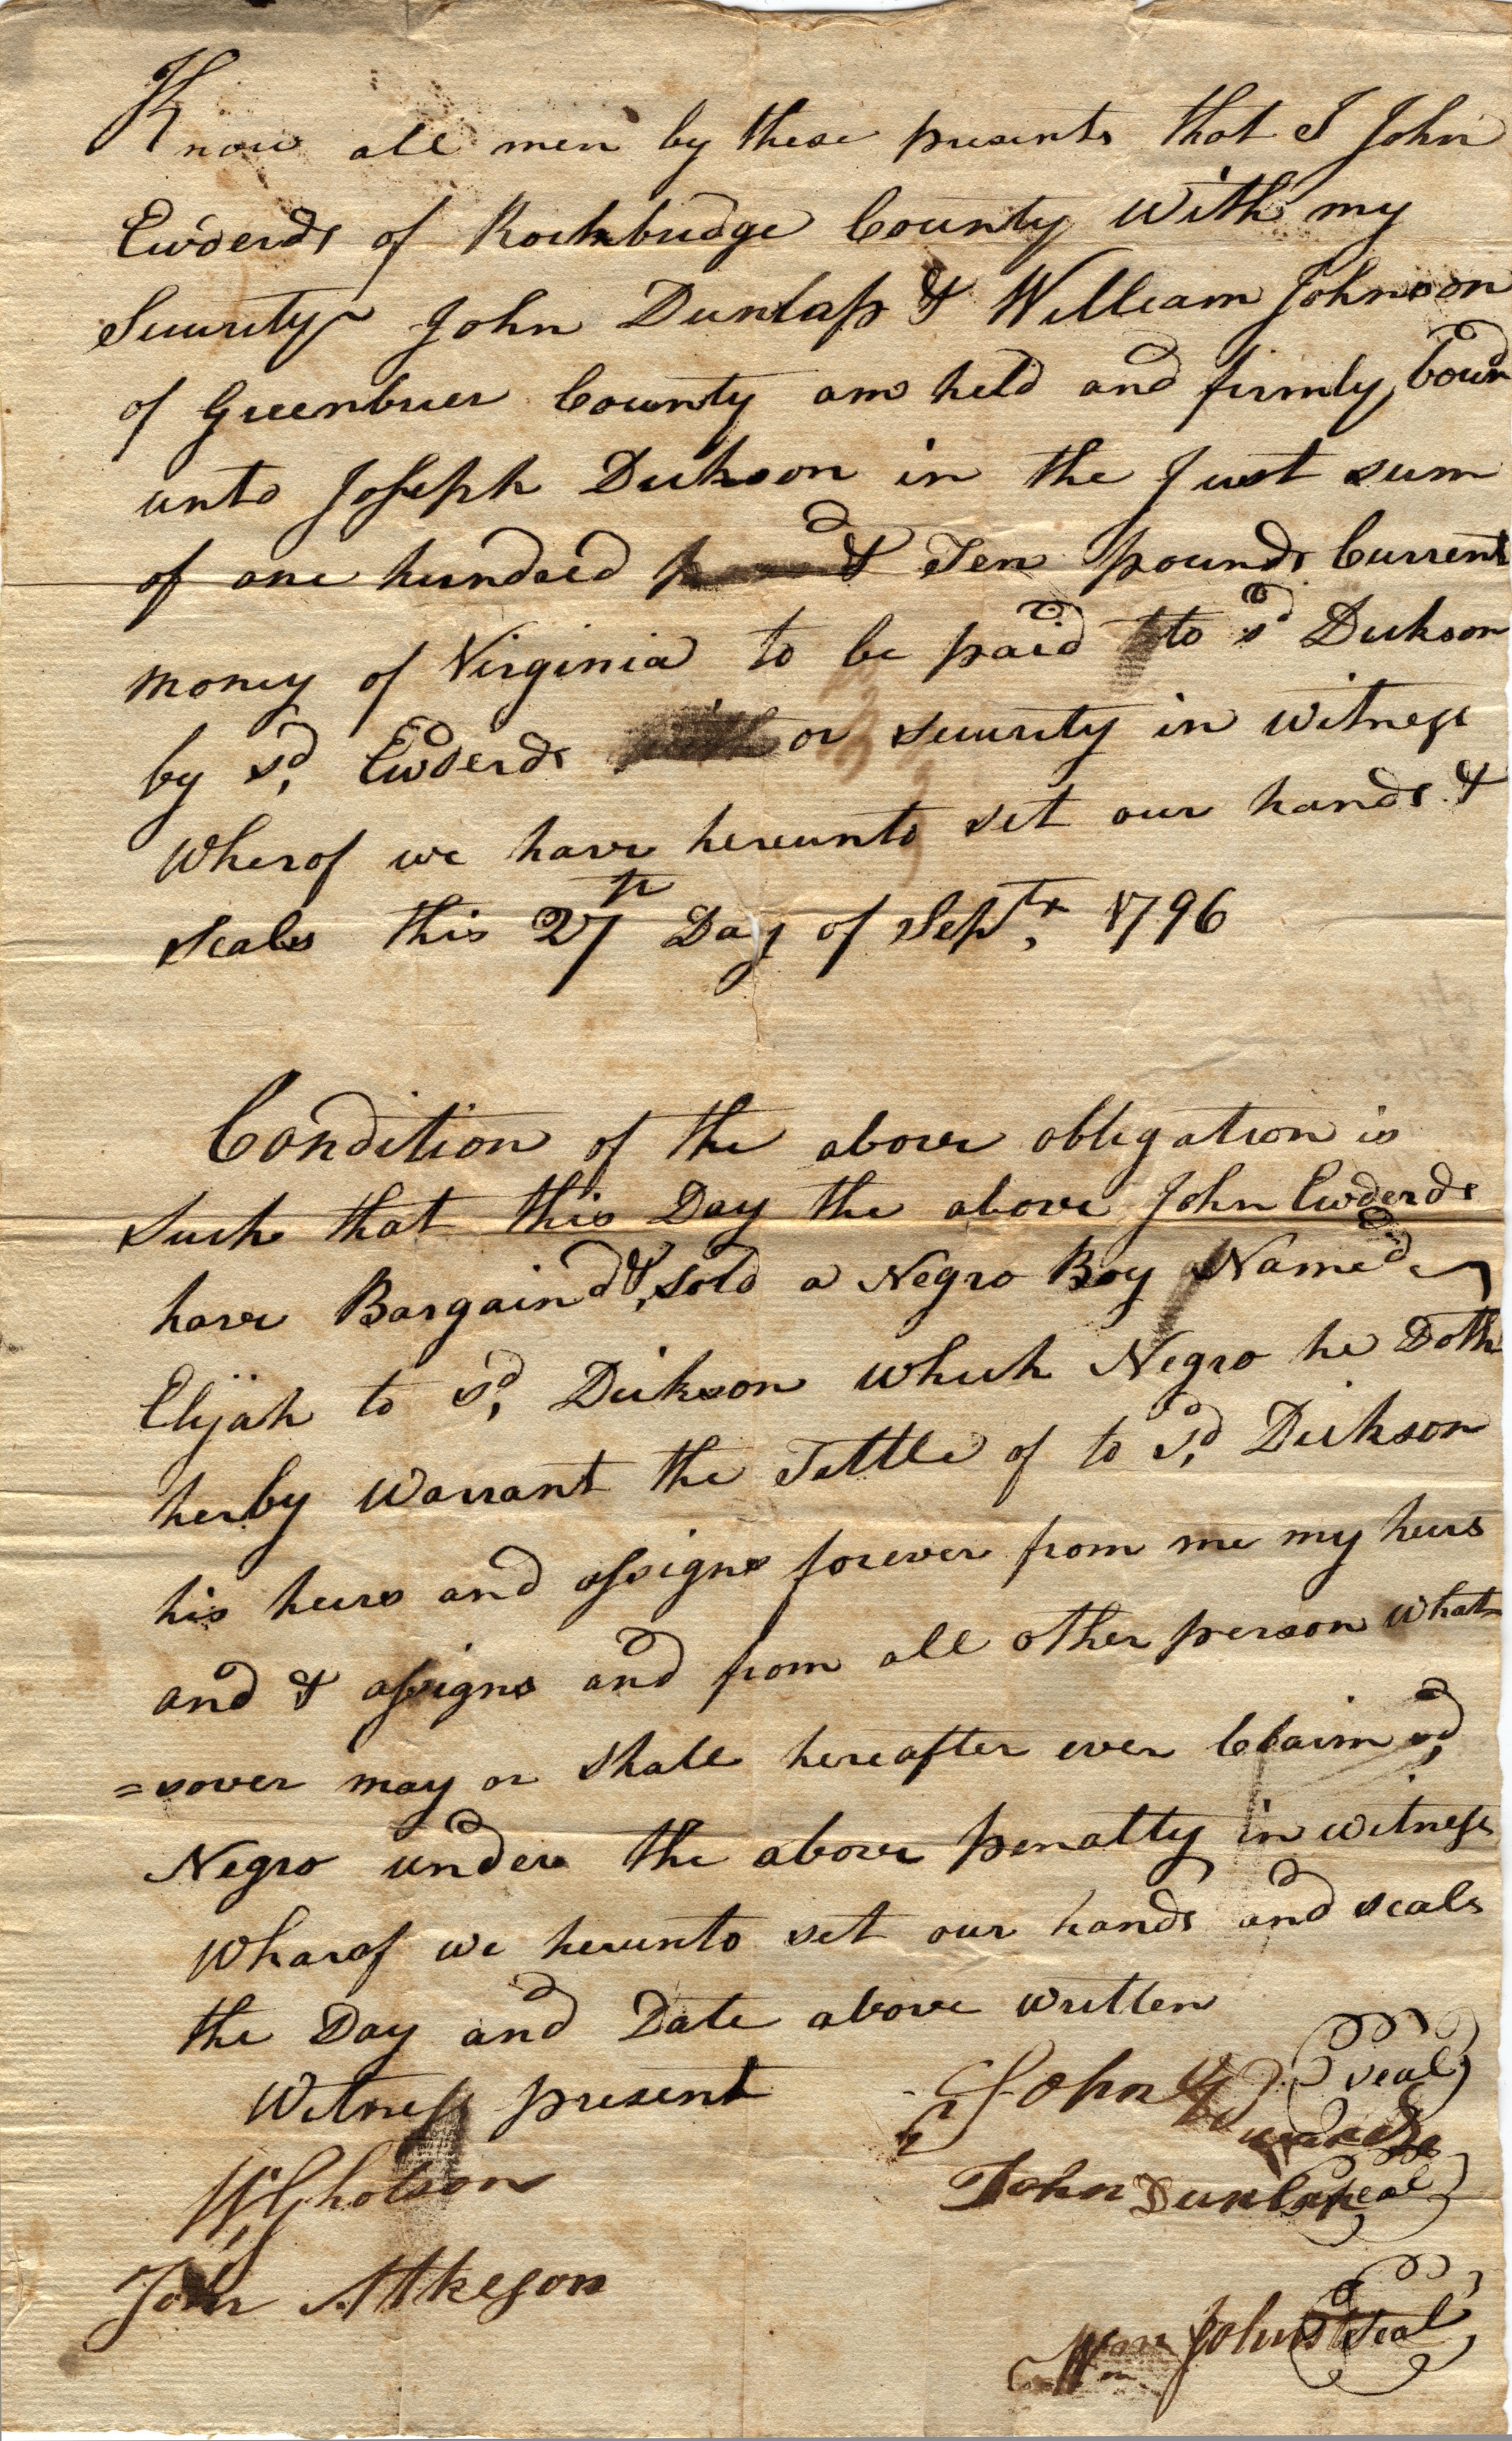 A bill of sale for a slave, a young boy named Elijah, in 1796